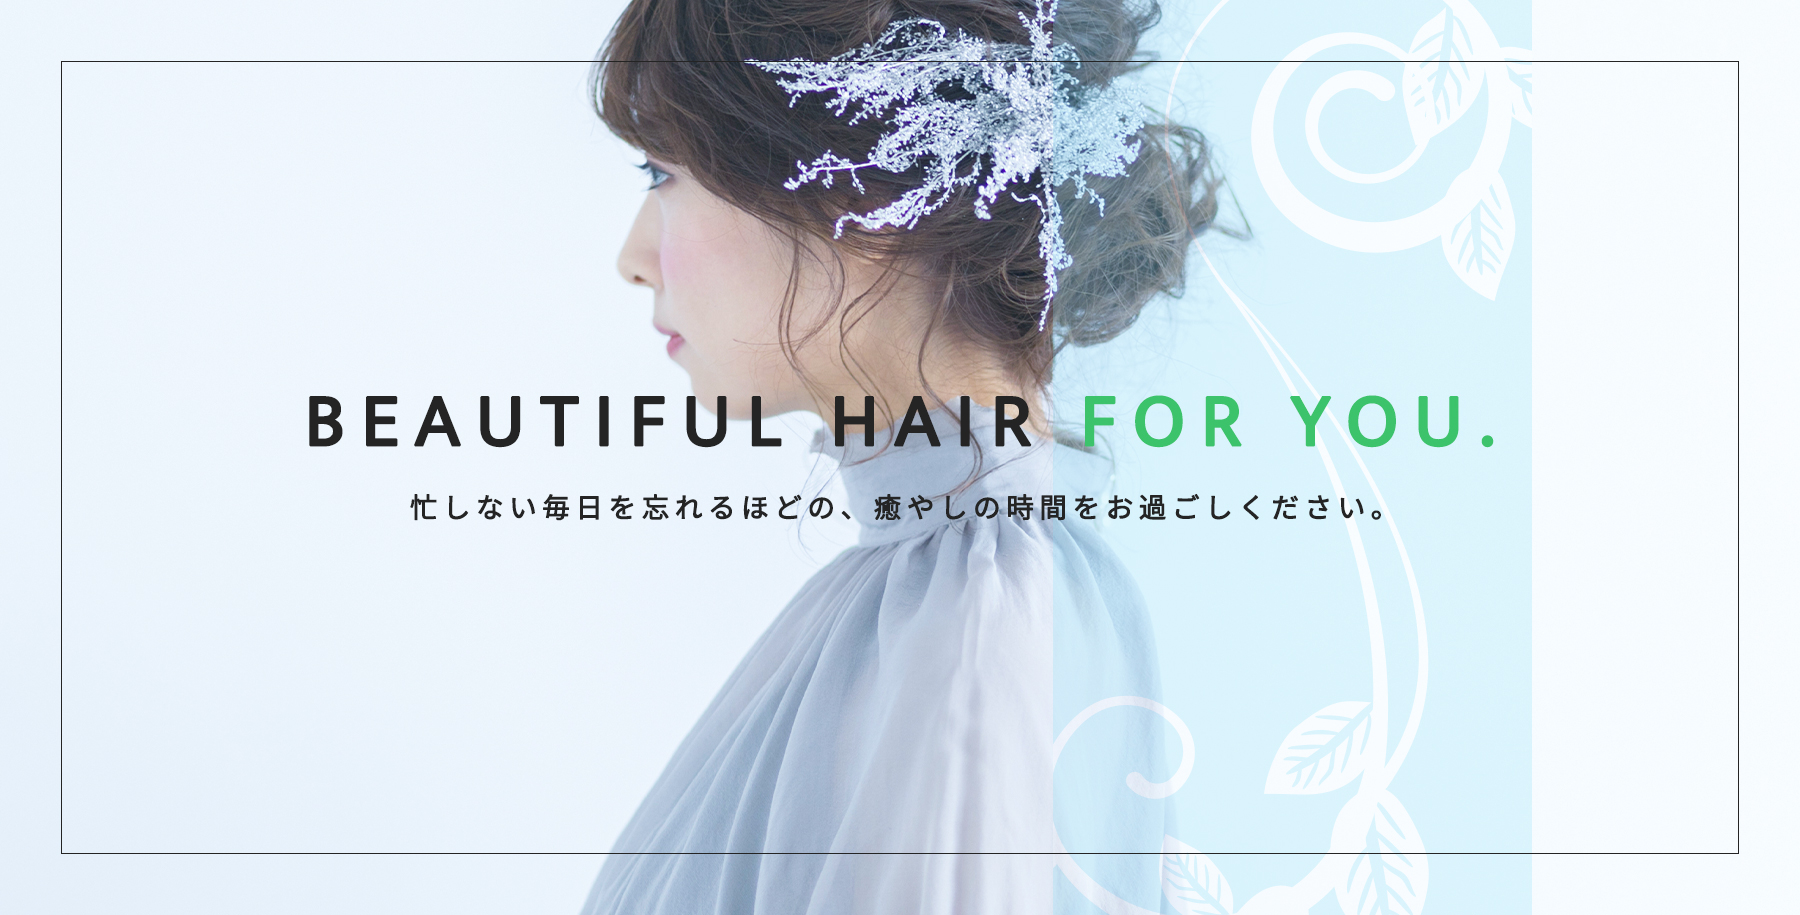 BEAUTIFUL HAIR FOR YOU